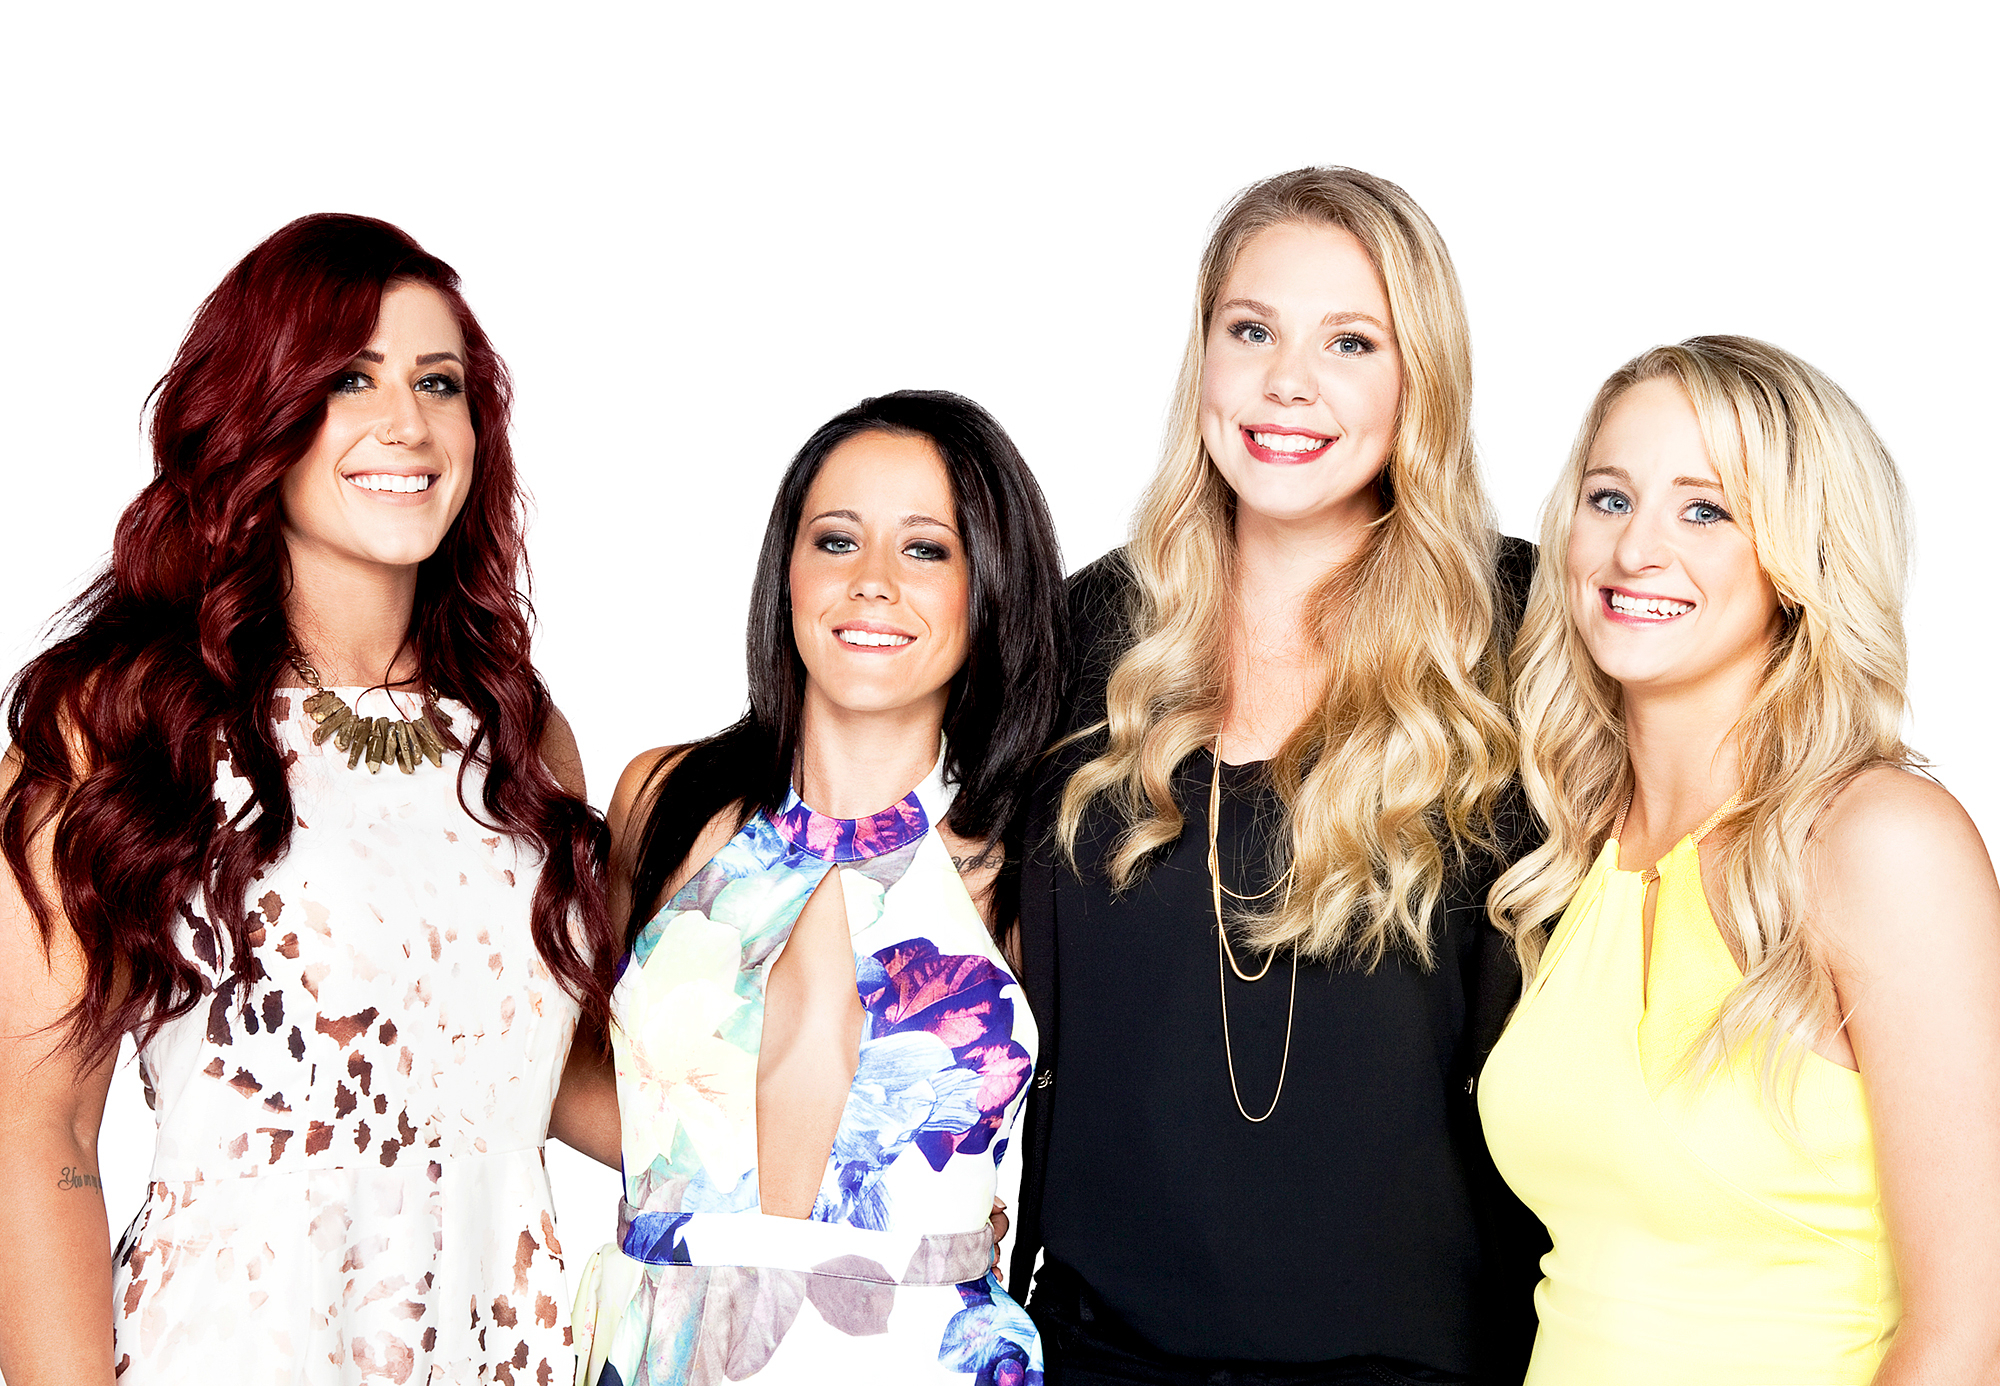 Chelsea Houska, Jenelle Evans, Kailyn Lowry and Leah Messer of 'Teen Mom 2'